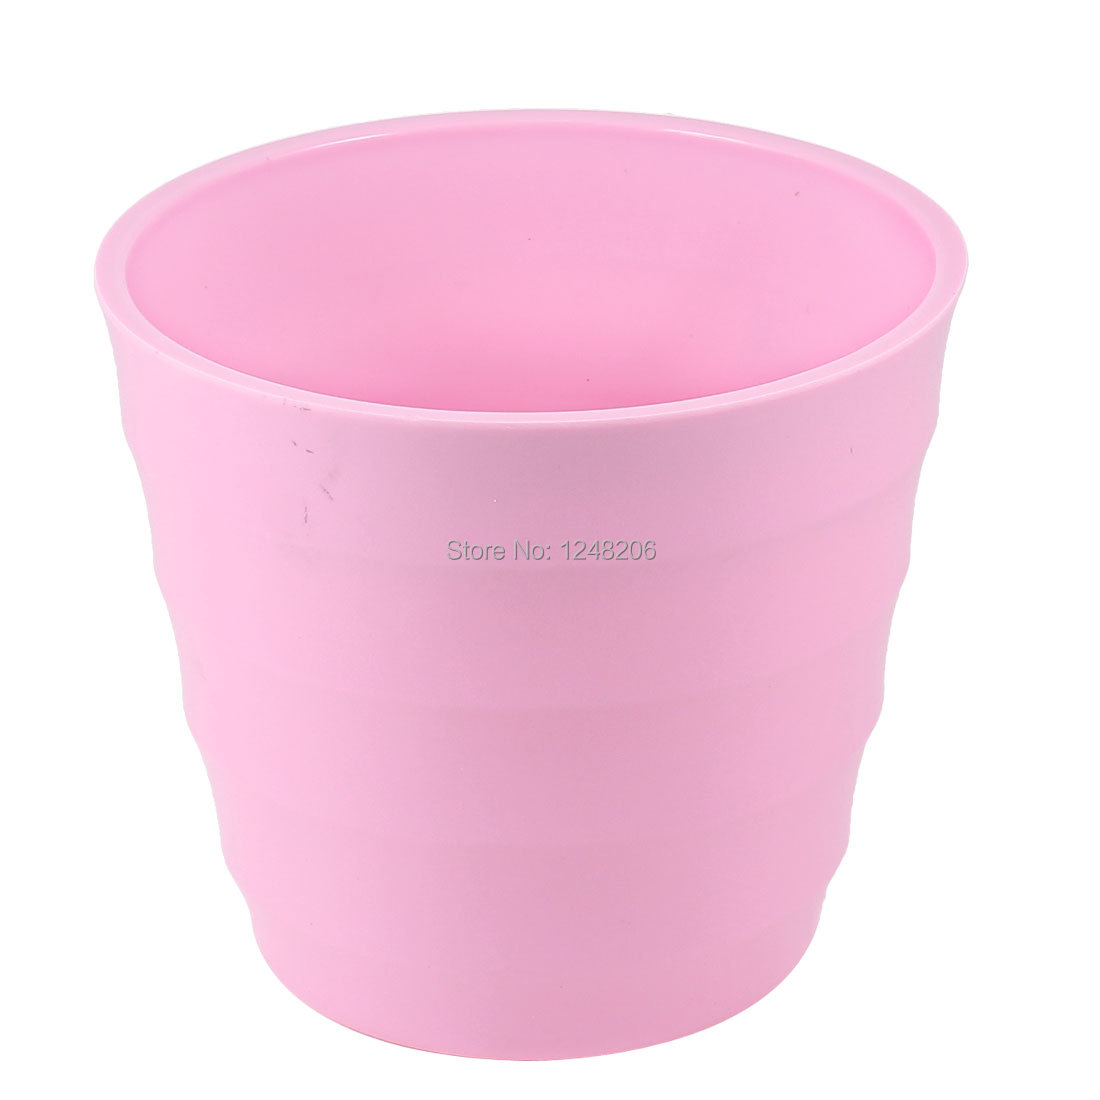 Pink flower pot choice image flower decoration ideas pink flower pot gallery flower decoration ideas pink flower pot images flower decoration ideas buy 135mm mightylinksfo